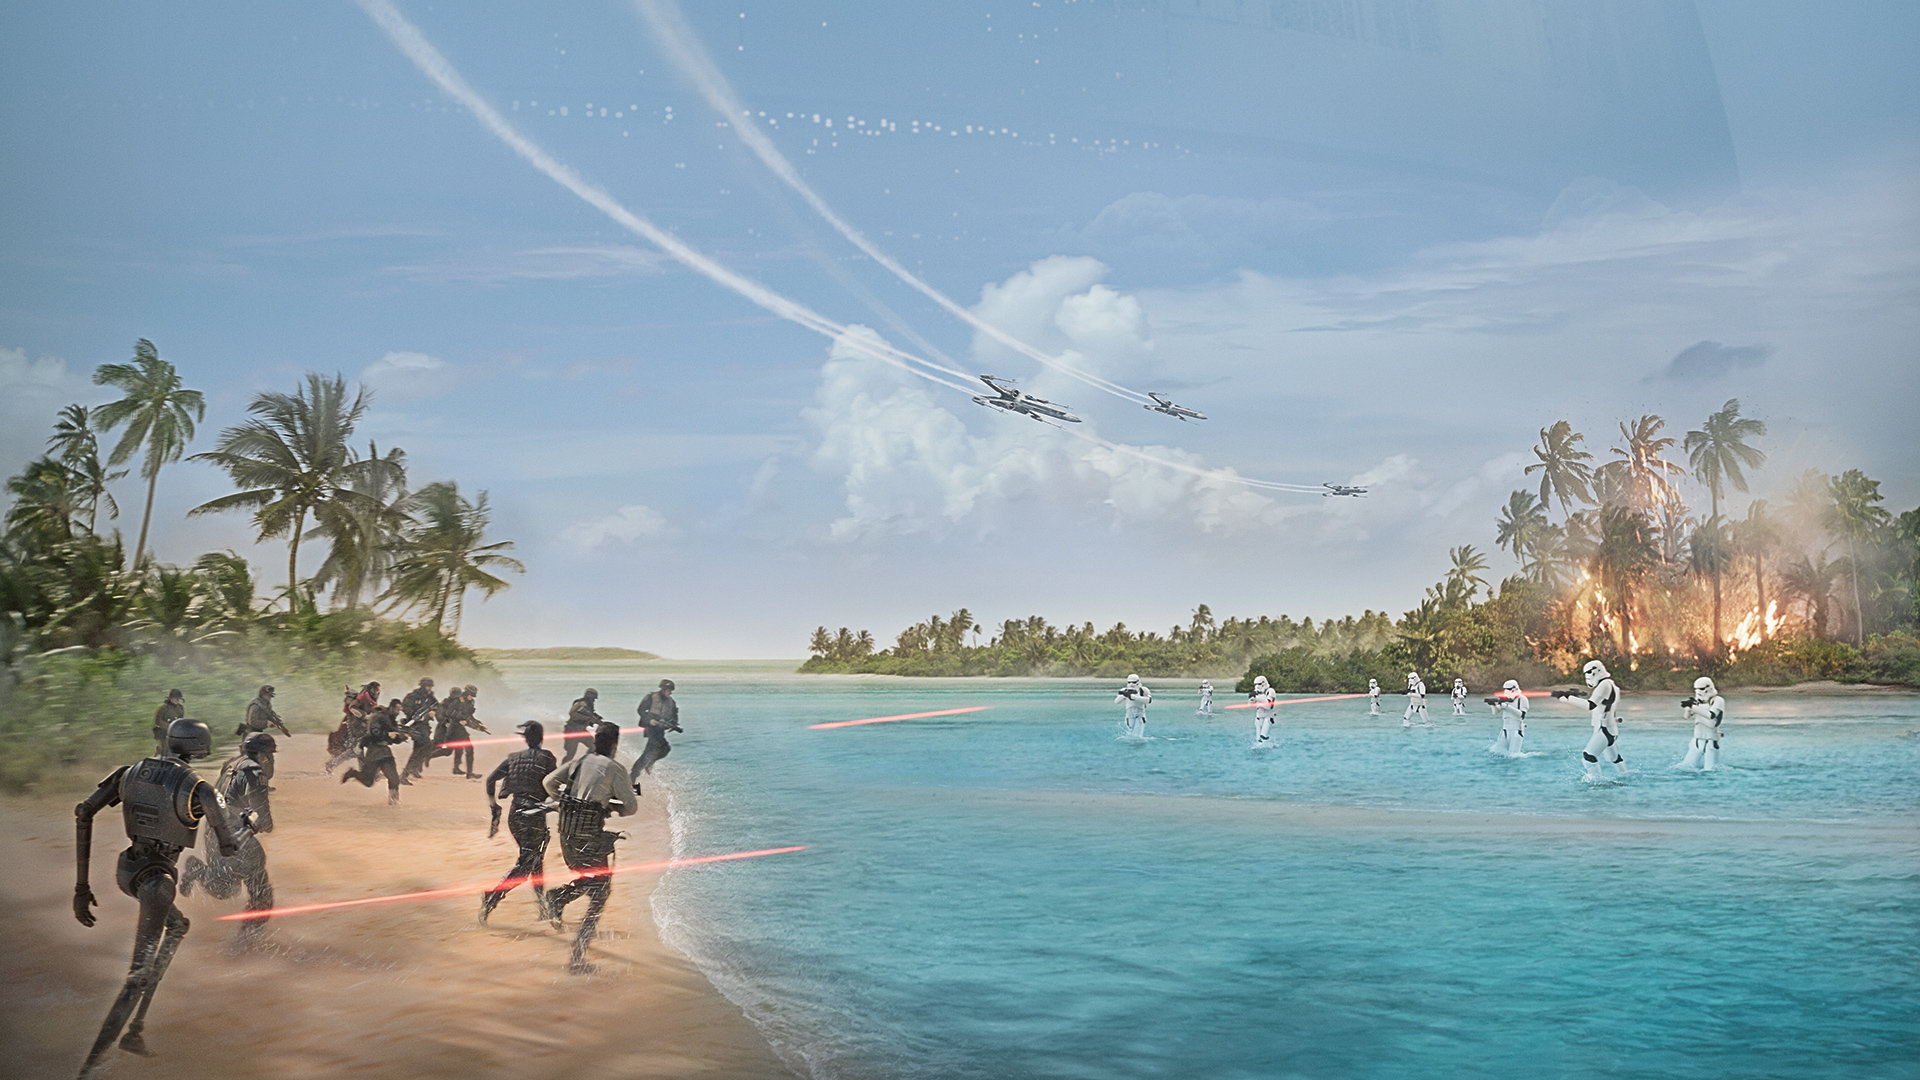 Download Full Hd 1080p Rogue One A Star Wars Story Desktop Wallpaper Id 259656 For Free